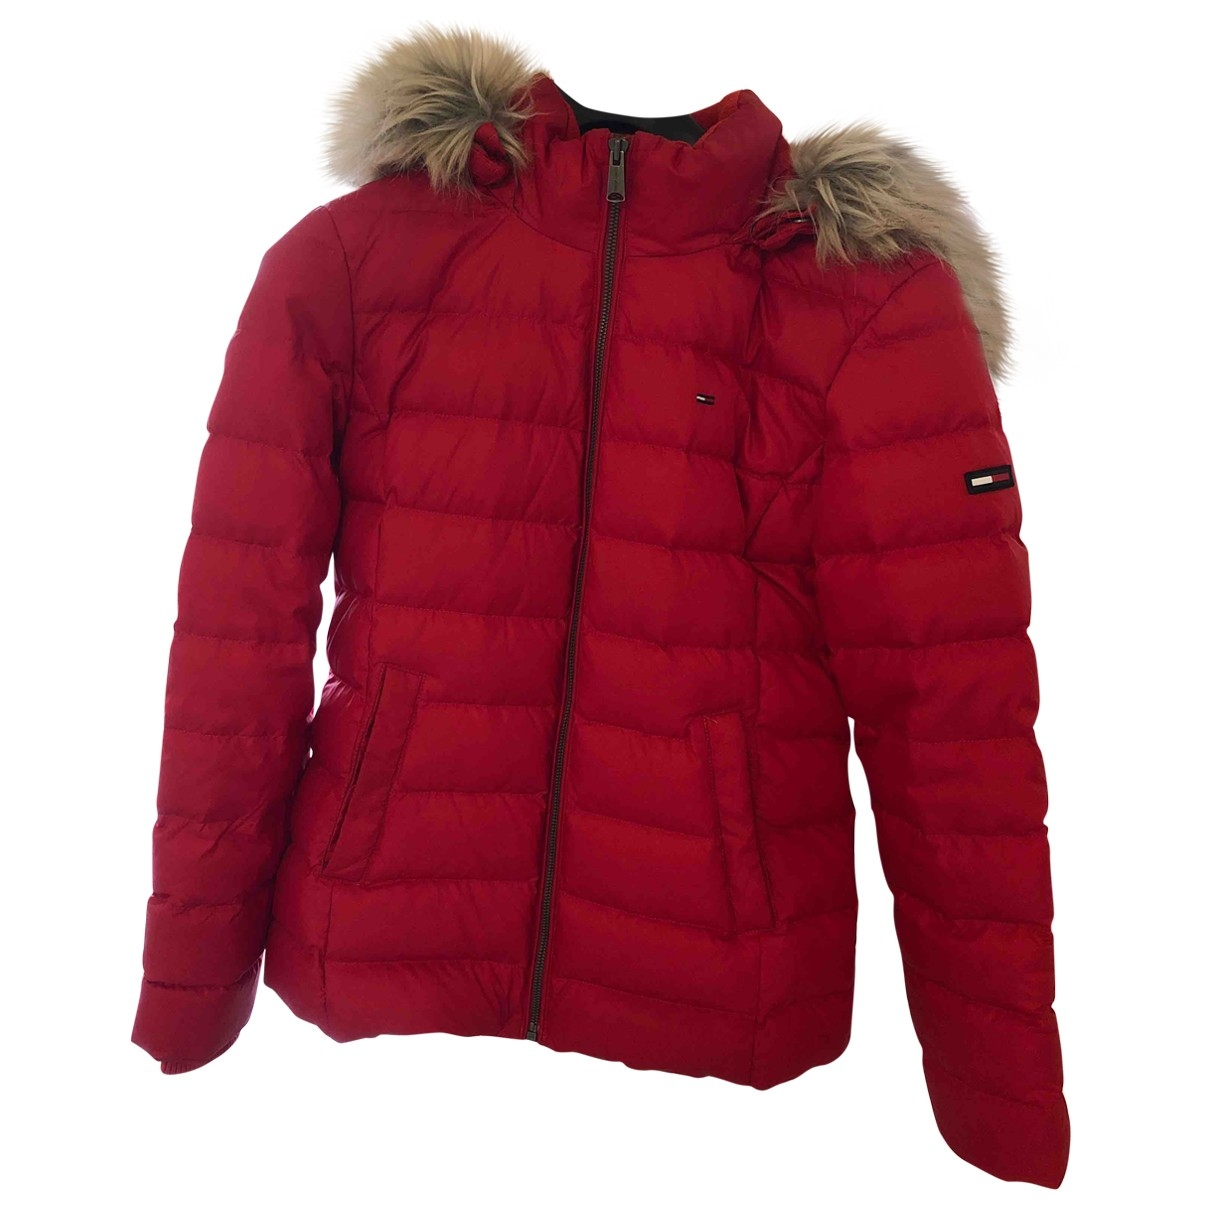 Tommy Hilfiger \N Red coat for Women M International